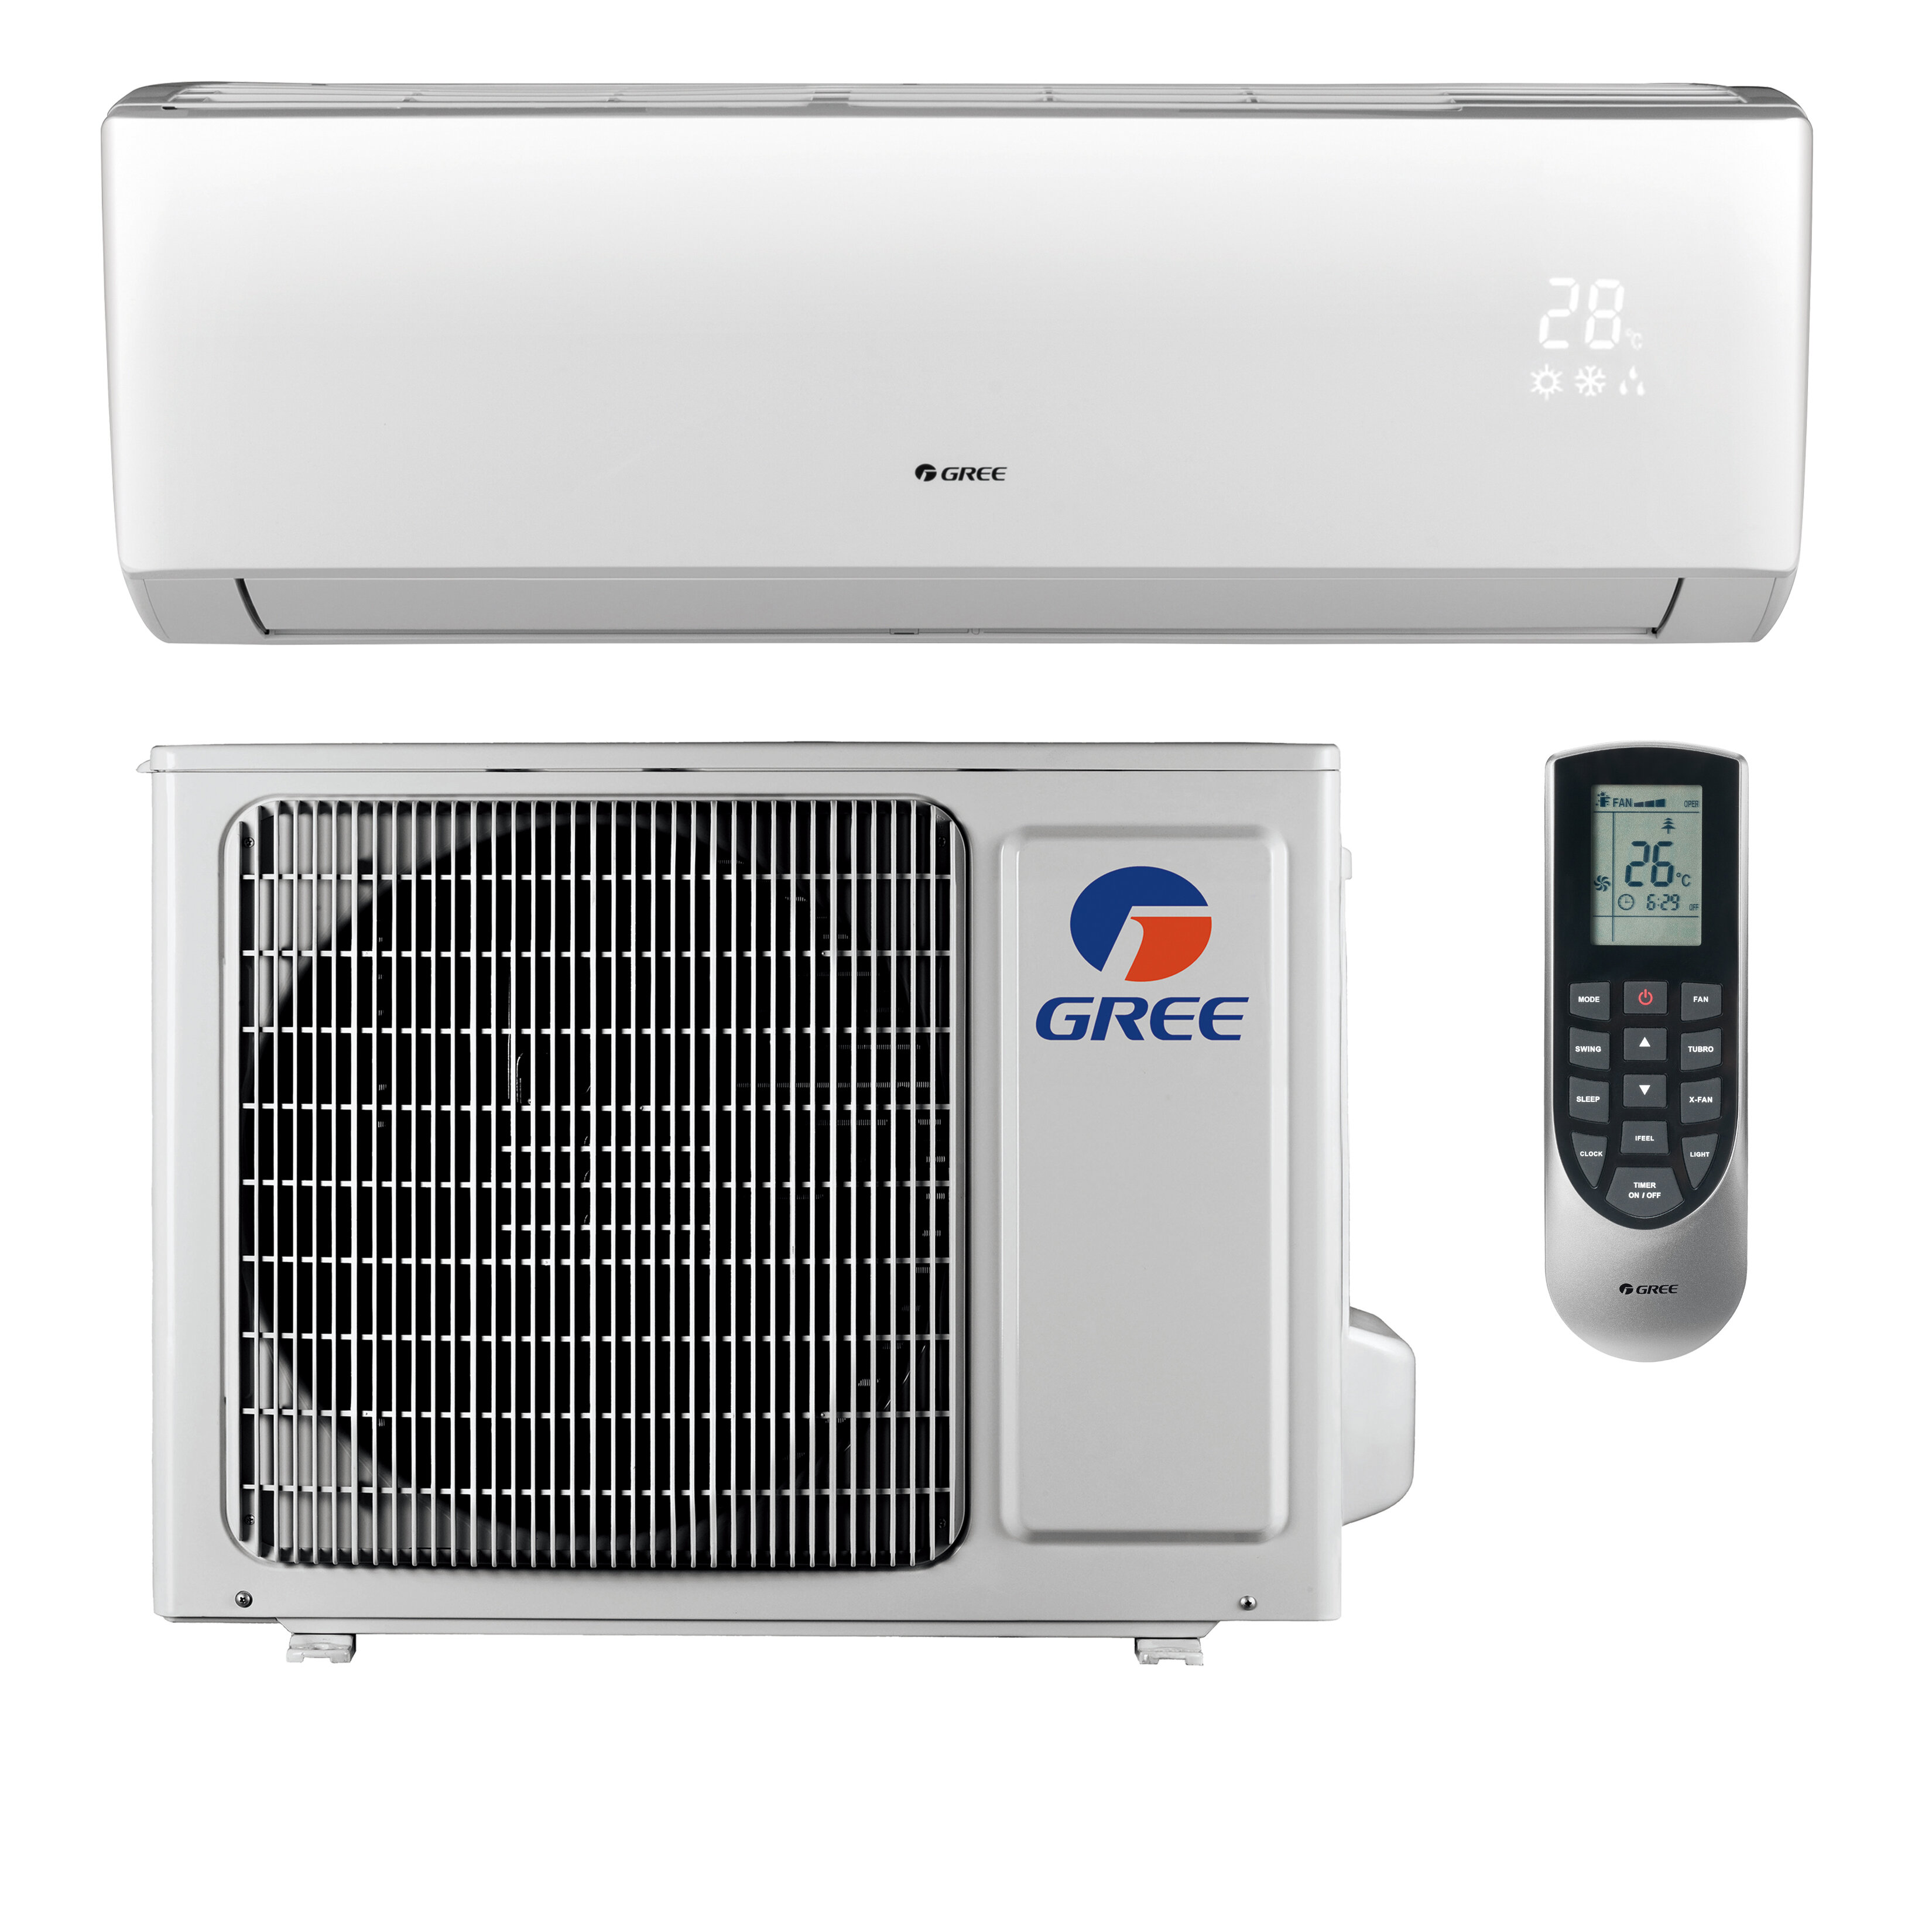 Gree Livo 28 000 Btu Ductless Mini Split Air Conditioner With Heater And Remote Wayfair